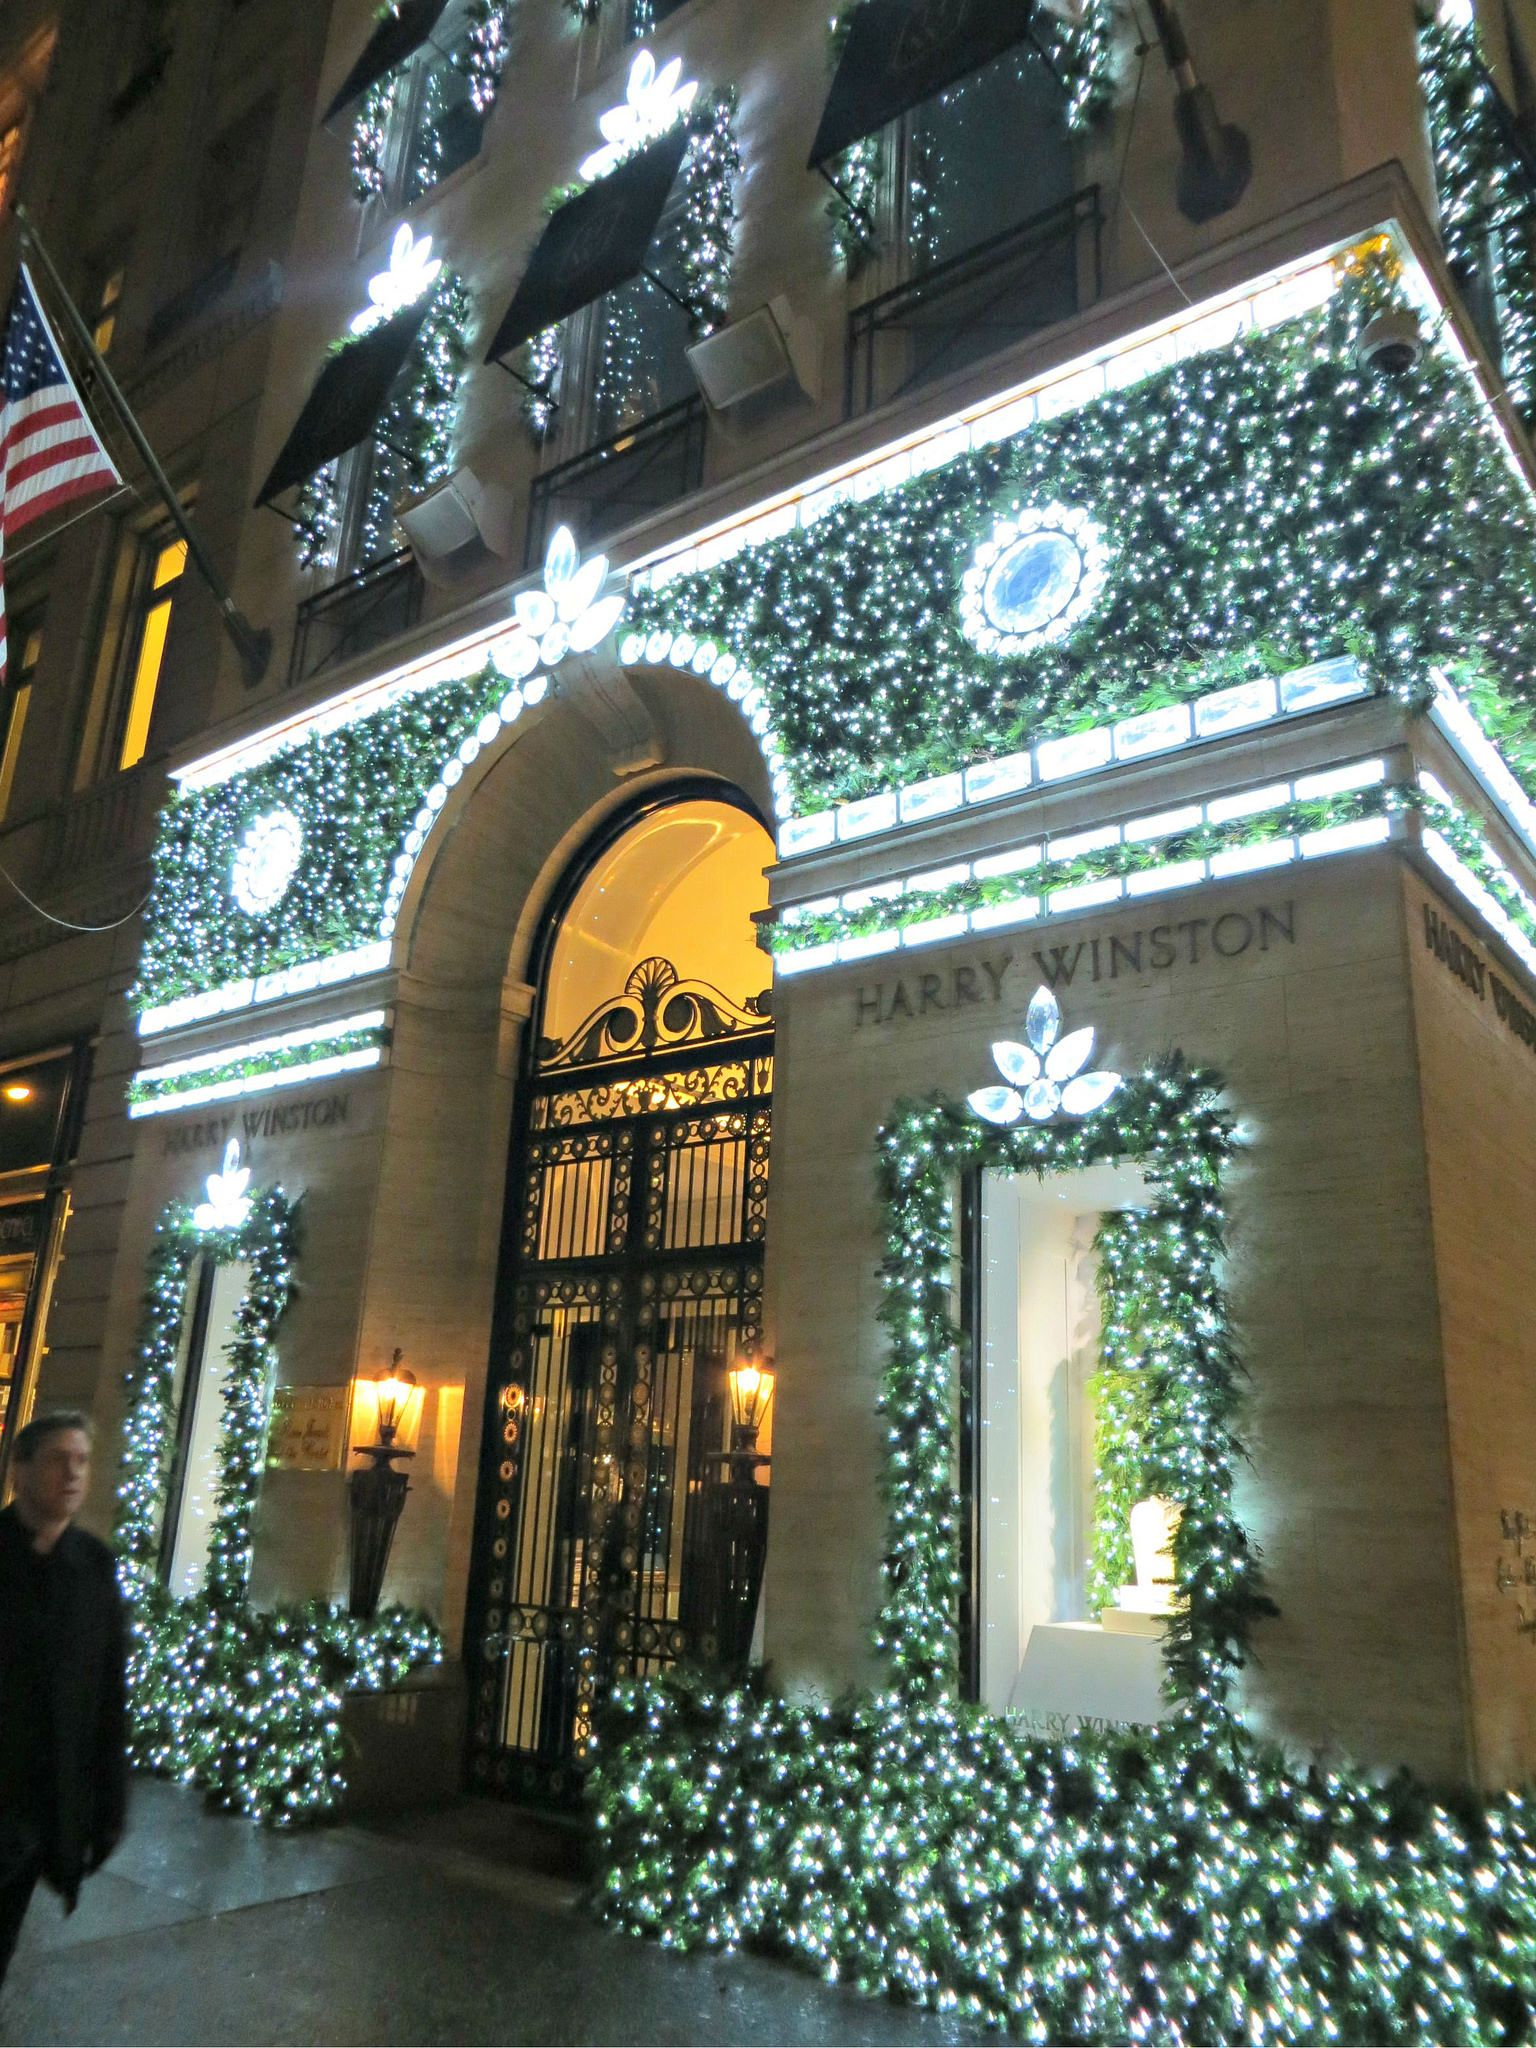 Harry Winston (jeweler, decorated for Christmas), 718 Fifth Avenue, New York City. November 23, 2012.